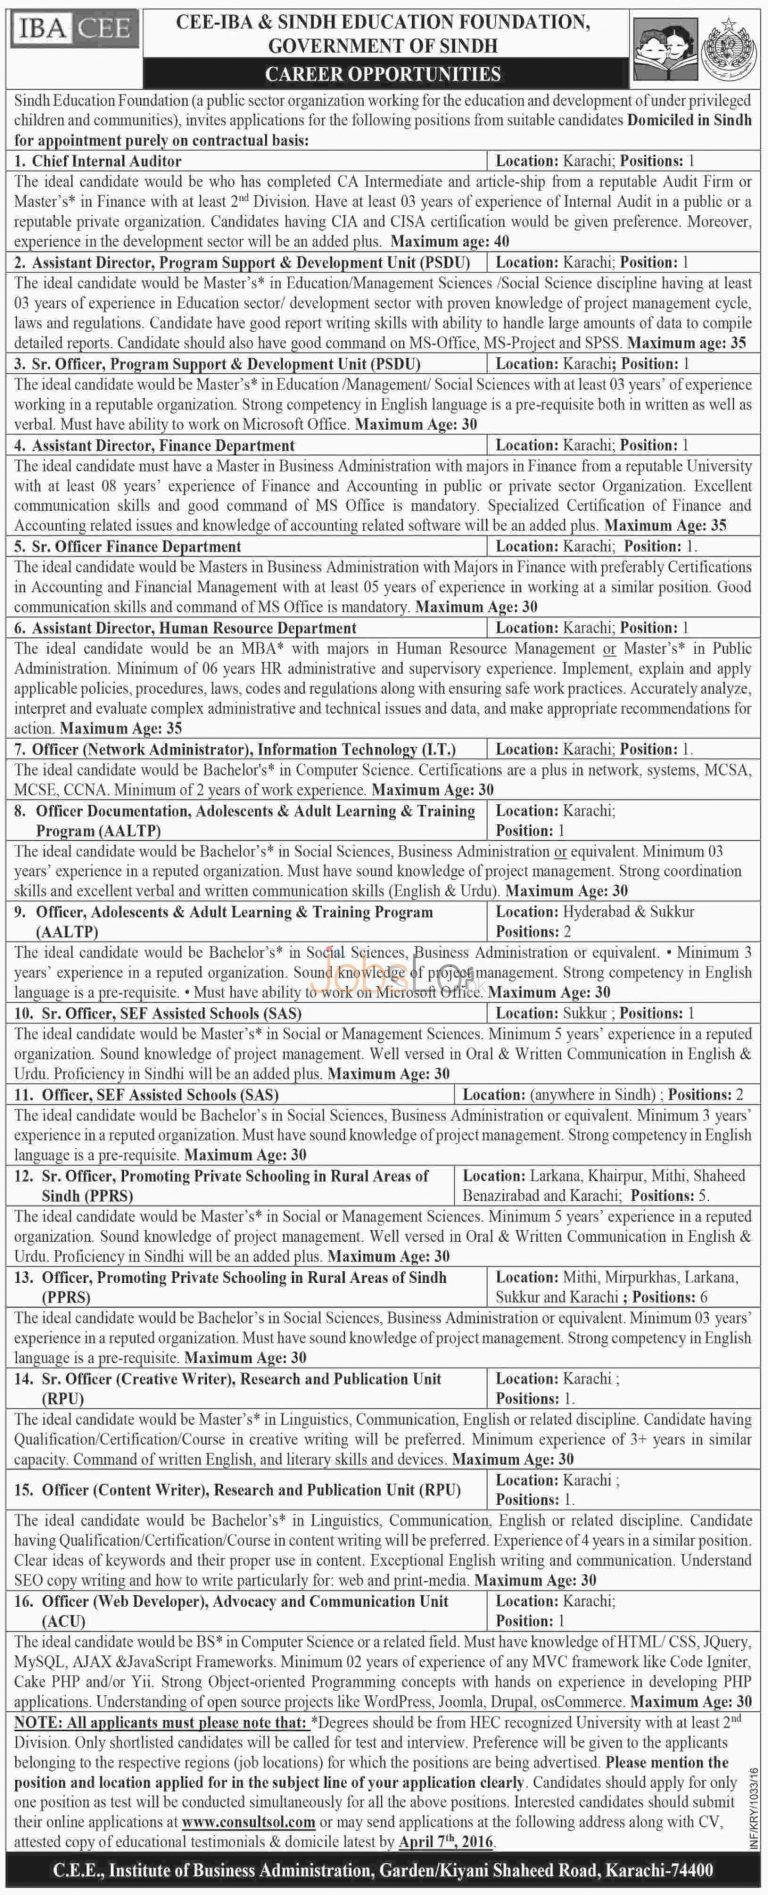 Sindh Education Foundation CEE-IBA Jobs 2016 in Apply Online Last Date